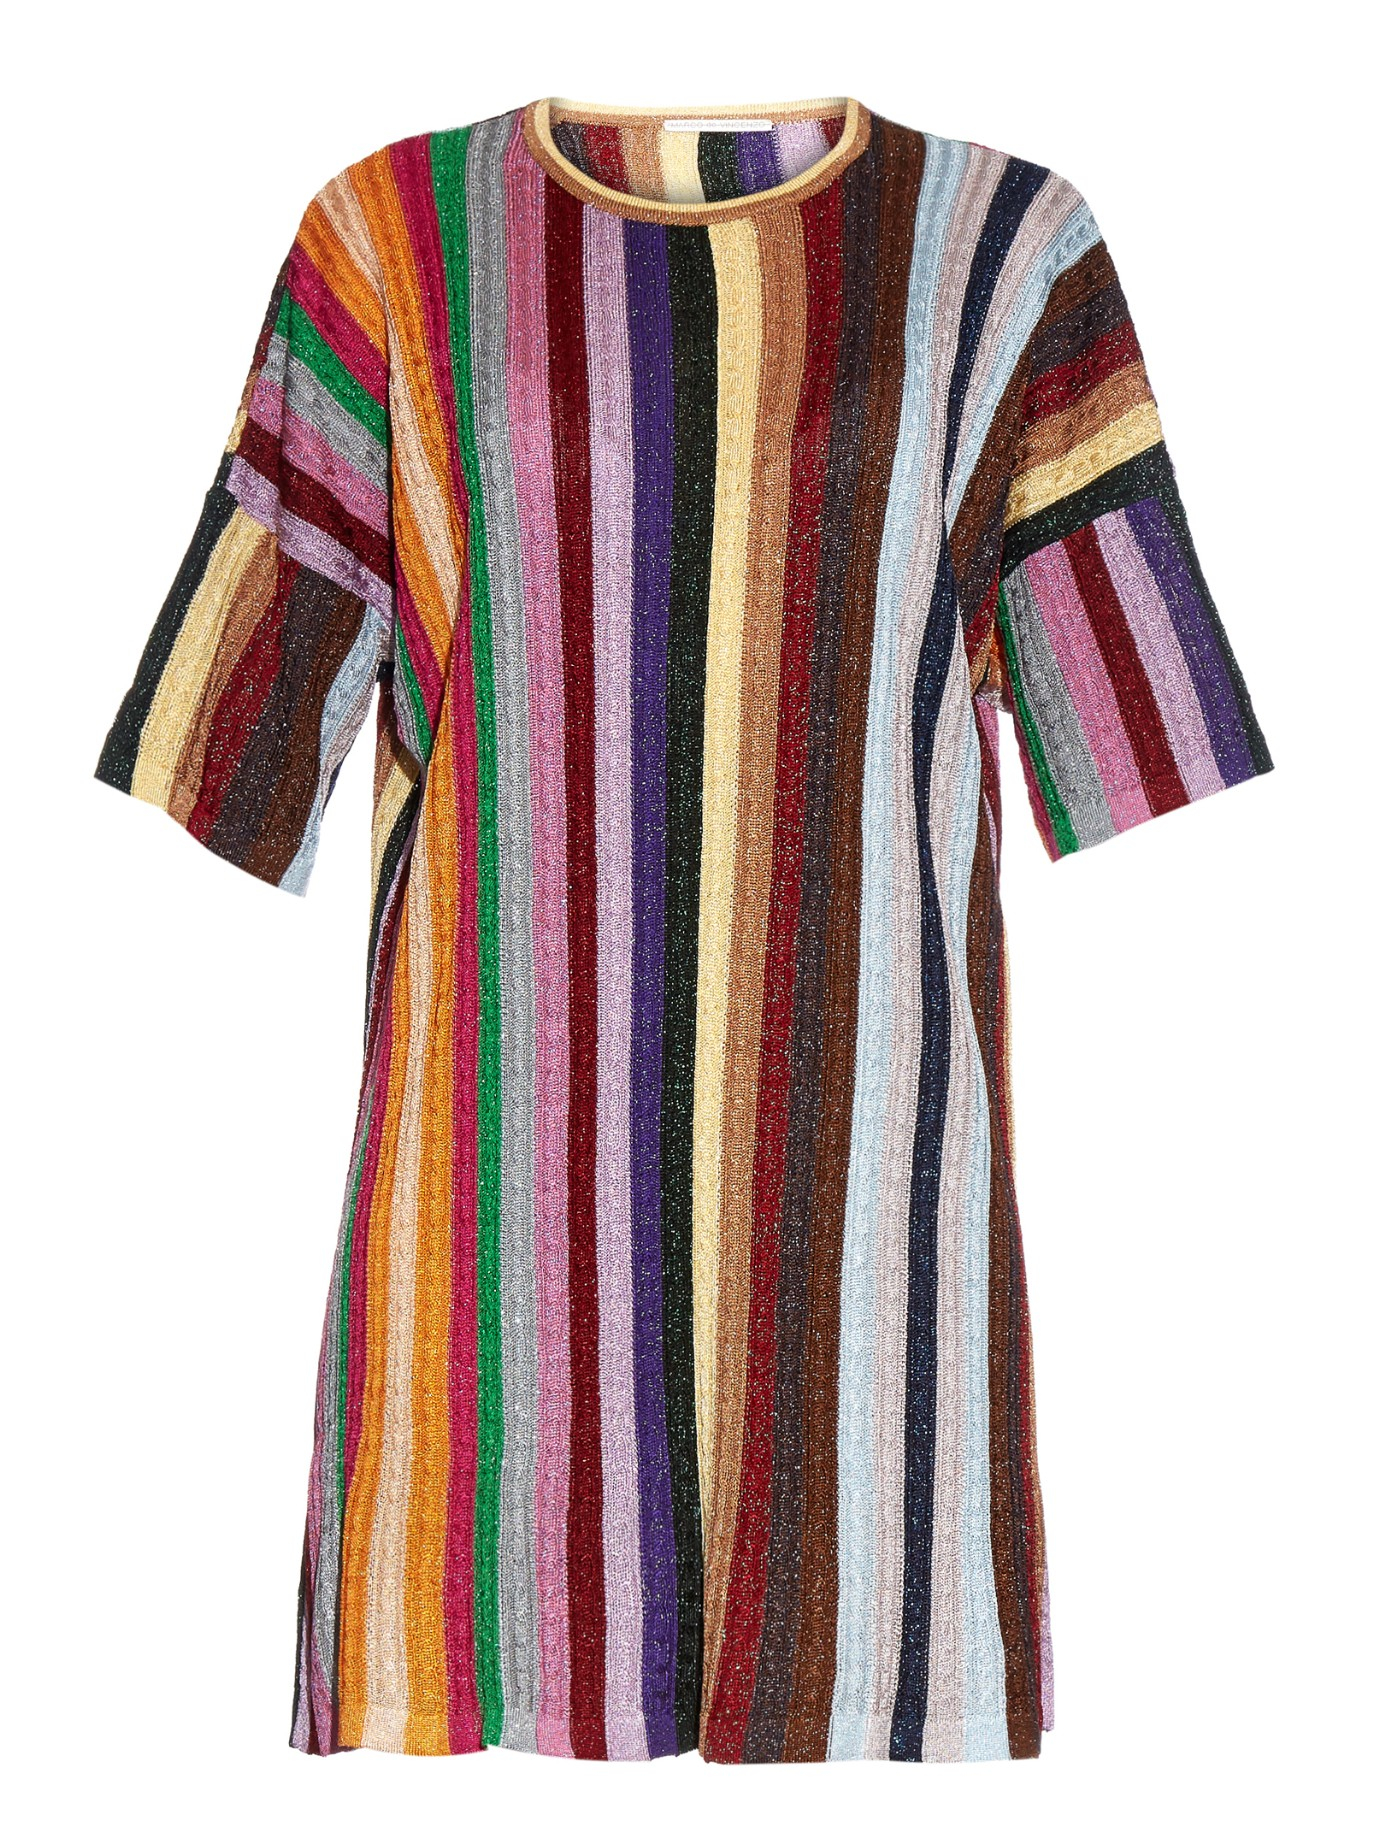 Cheap Sale Latest Collections tie knit dress - Pink & Purple Marco De Vincenzo Fashionable Online 100% Authentic Online Free Shipping 100% Guaranteed fUXr1Z